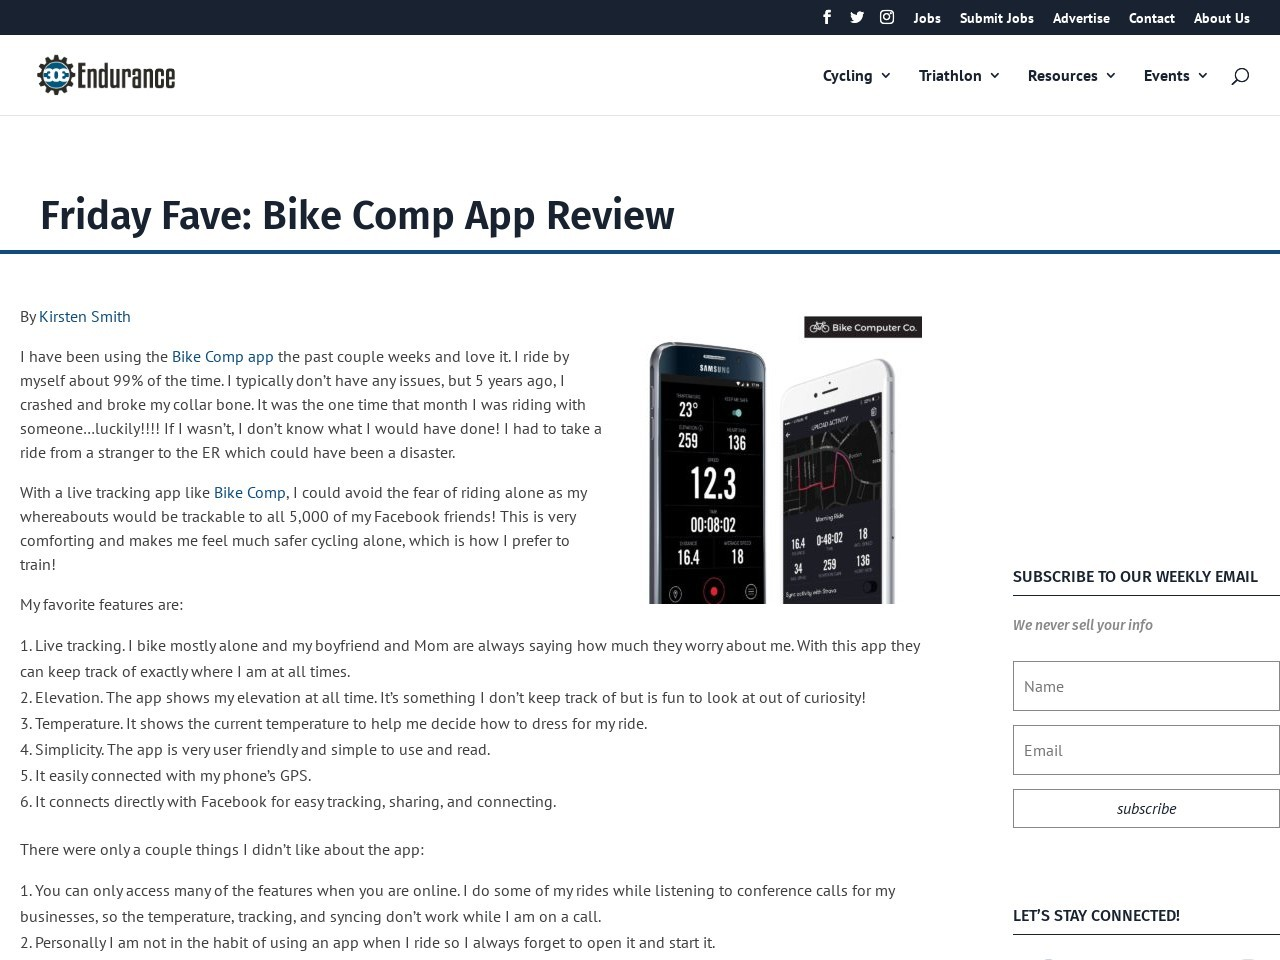 Friday Fave: Bike Comp App Review